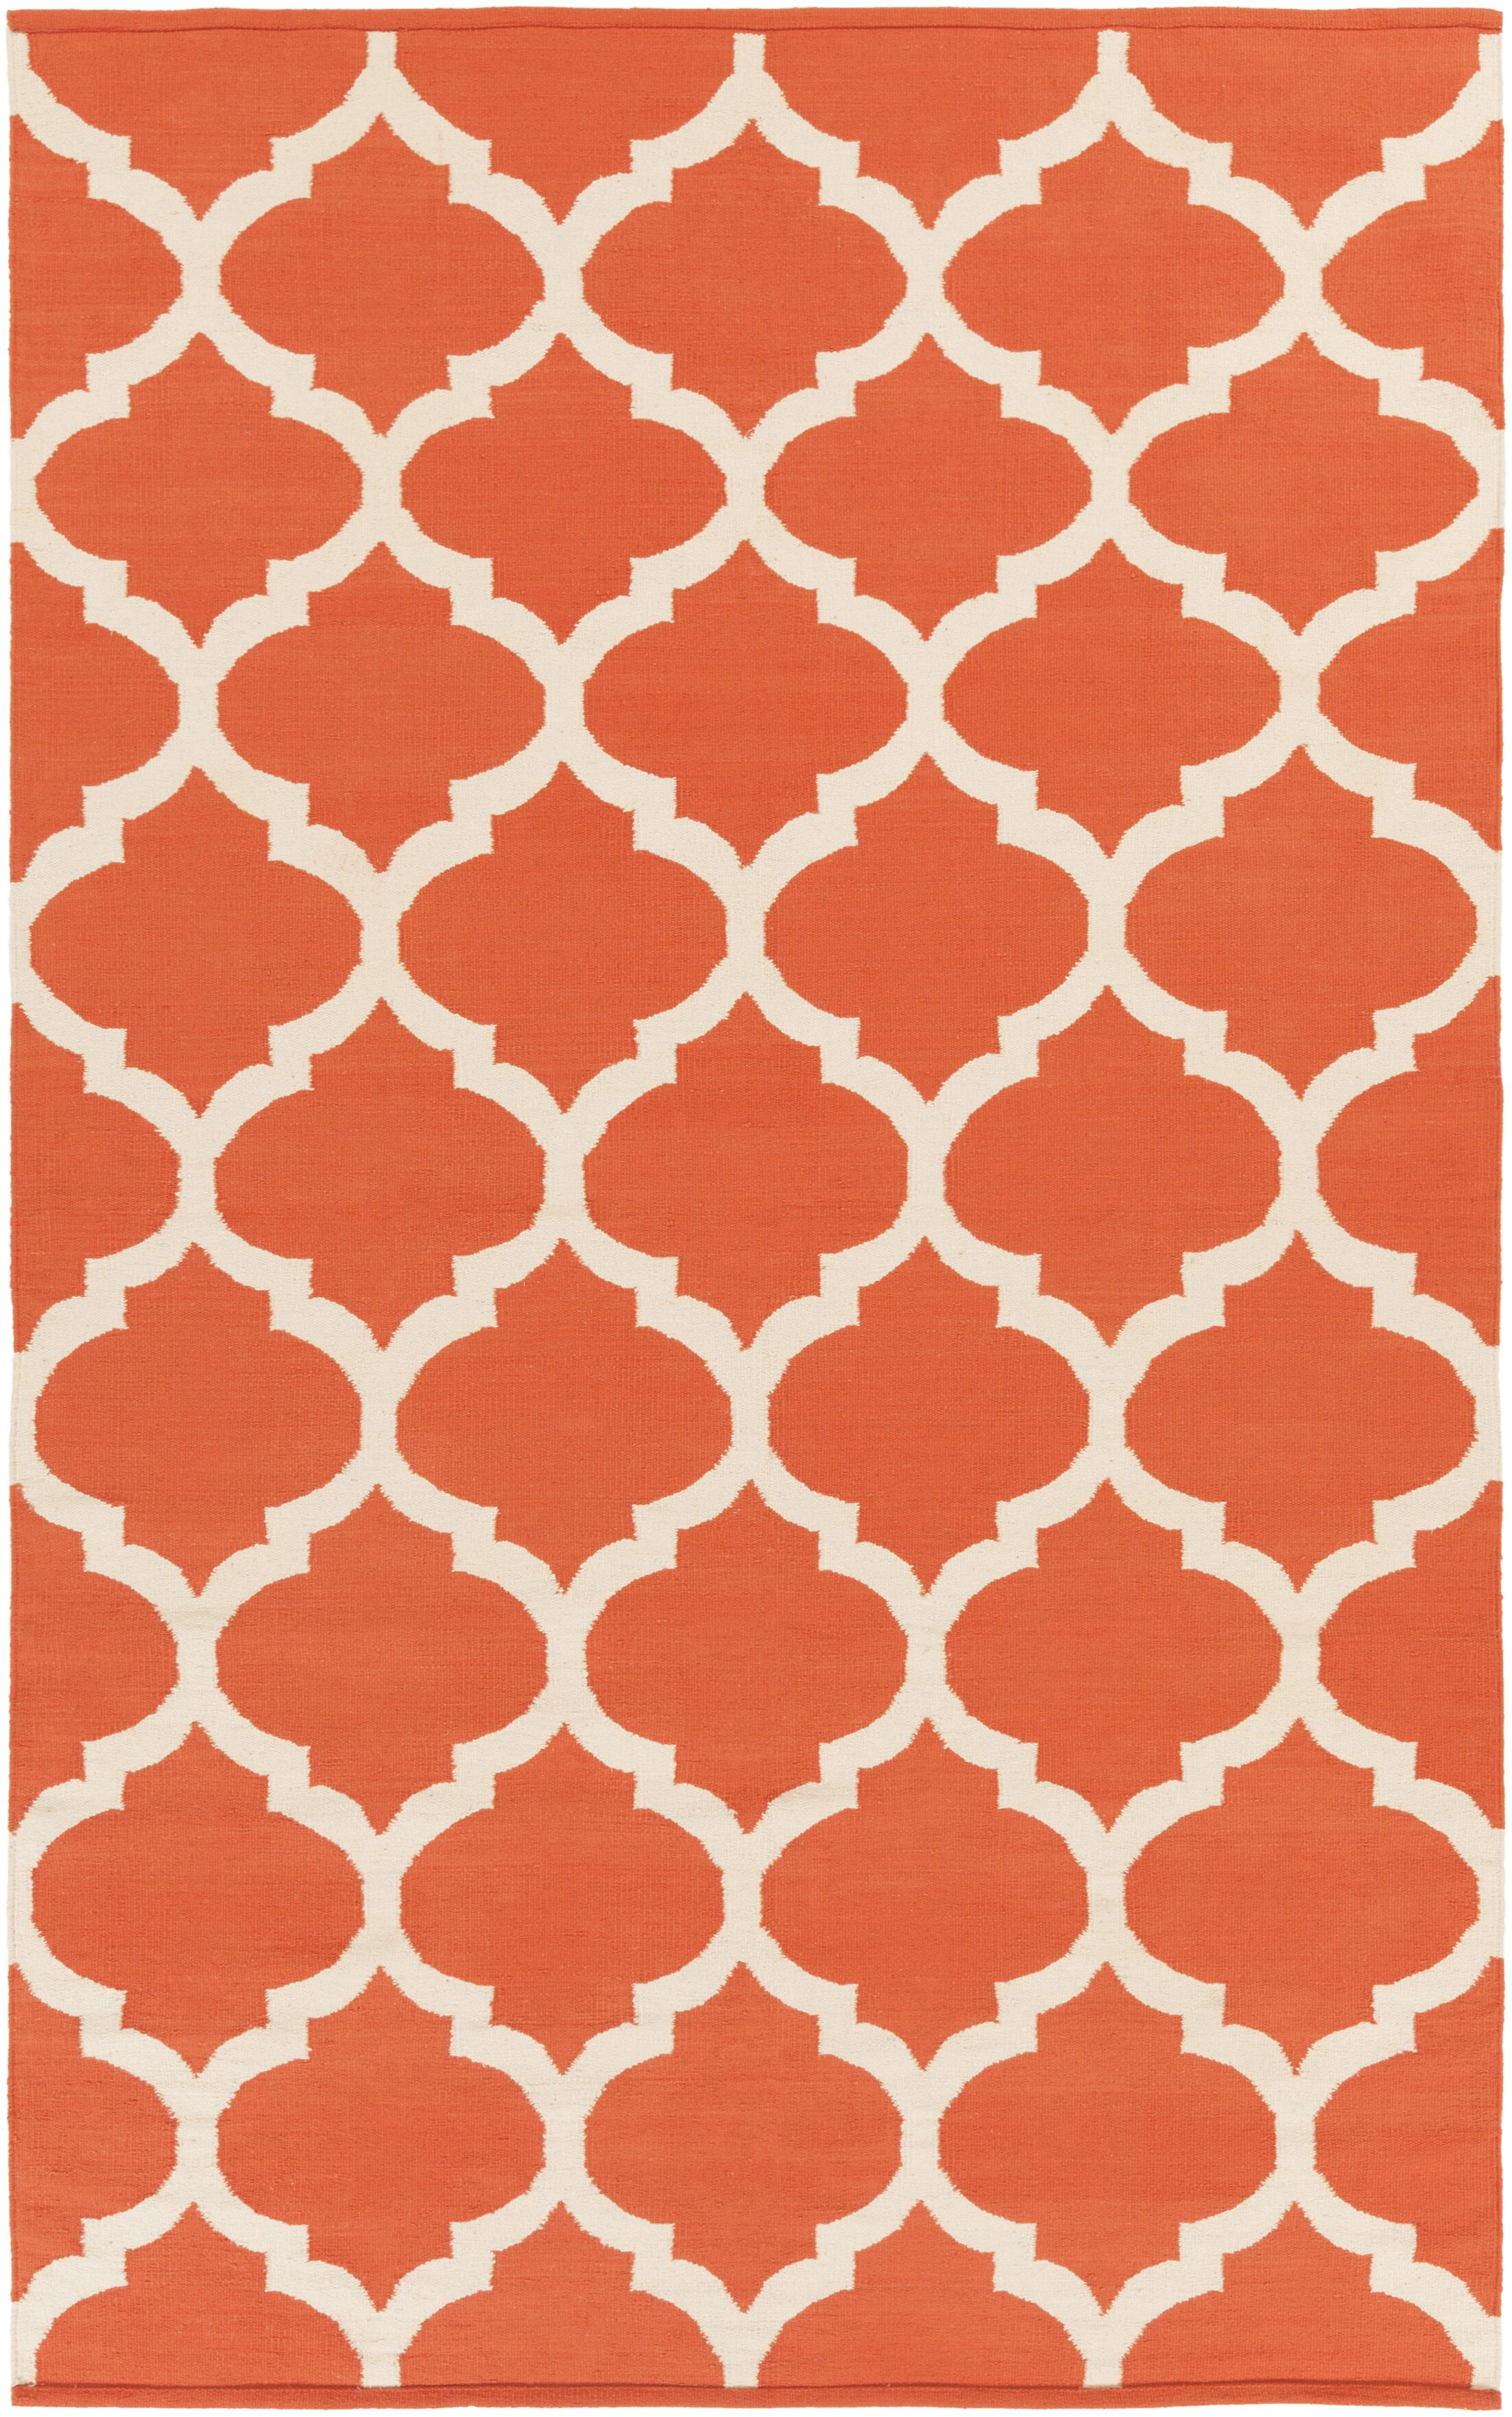 Bohannon Orange Geometric Area Rug Rug Size: Rectangle 8' x 10'